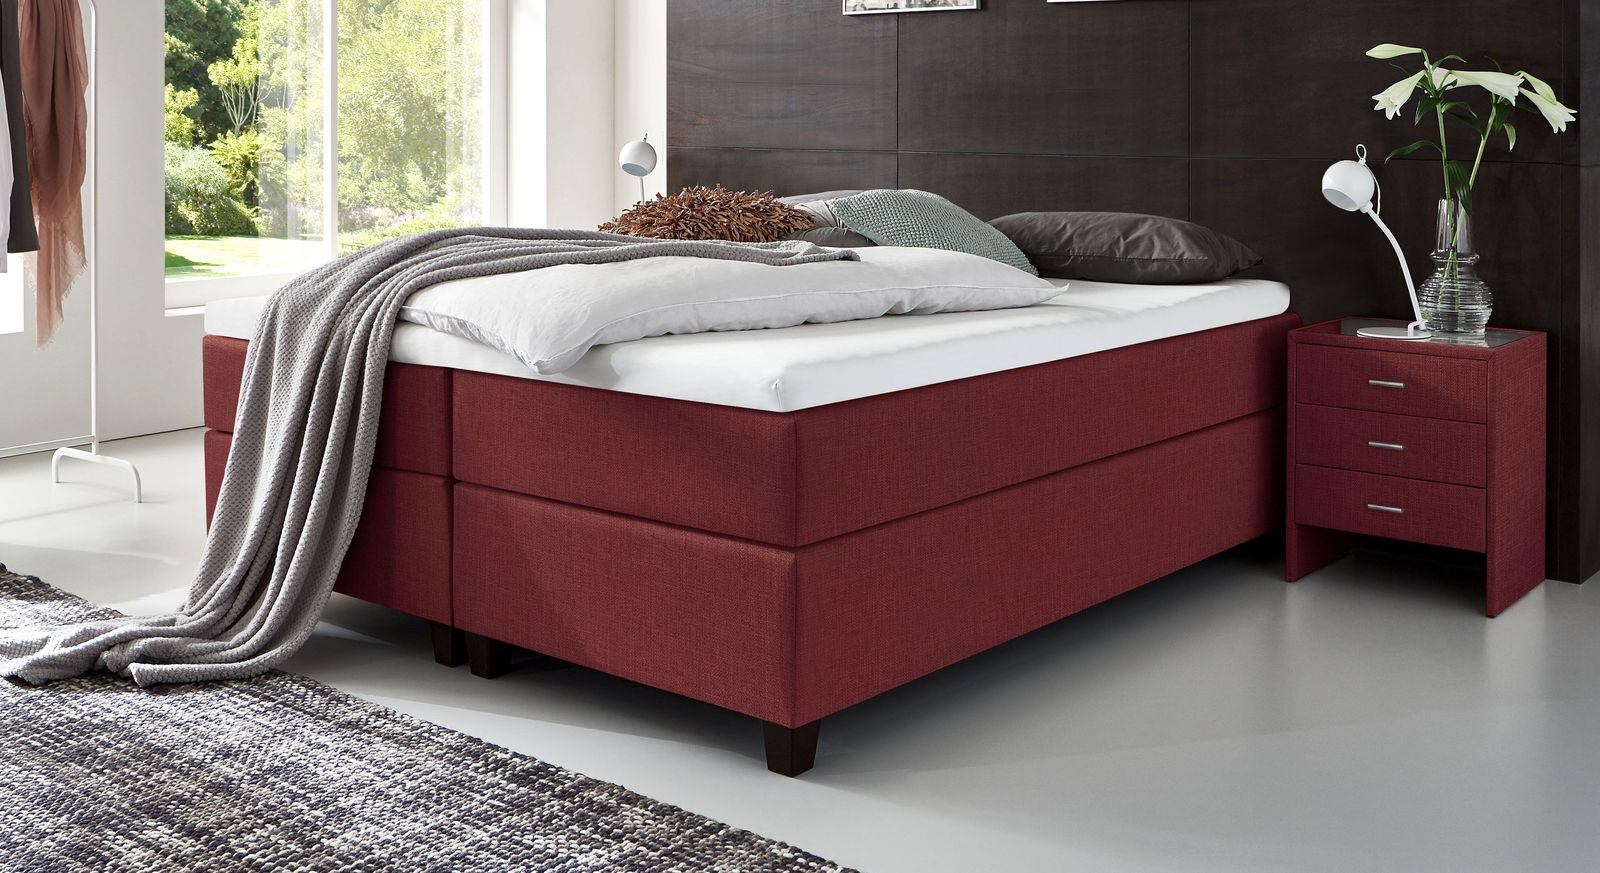 66 cm hohe Boxspringliege Luciano aus meliertem Webstoff in Rot